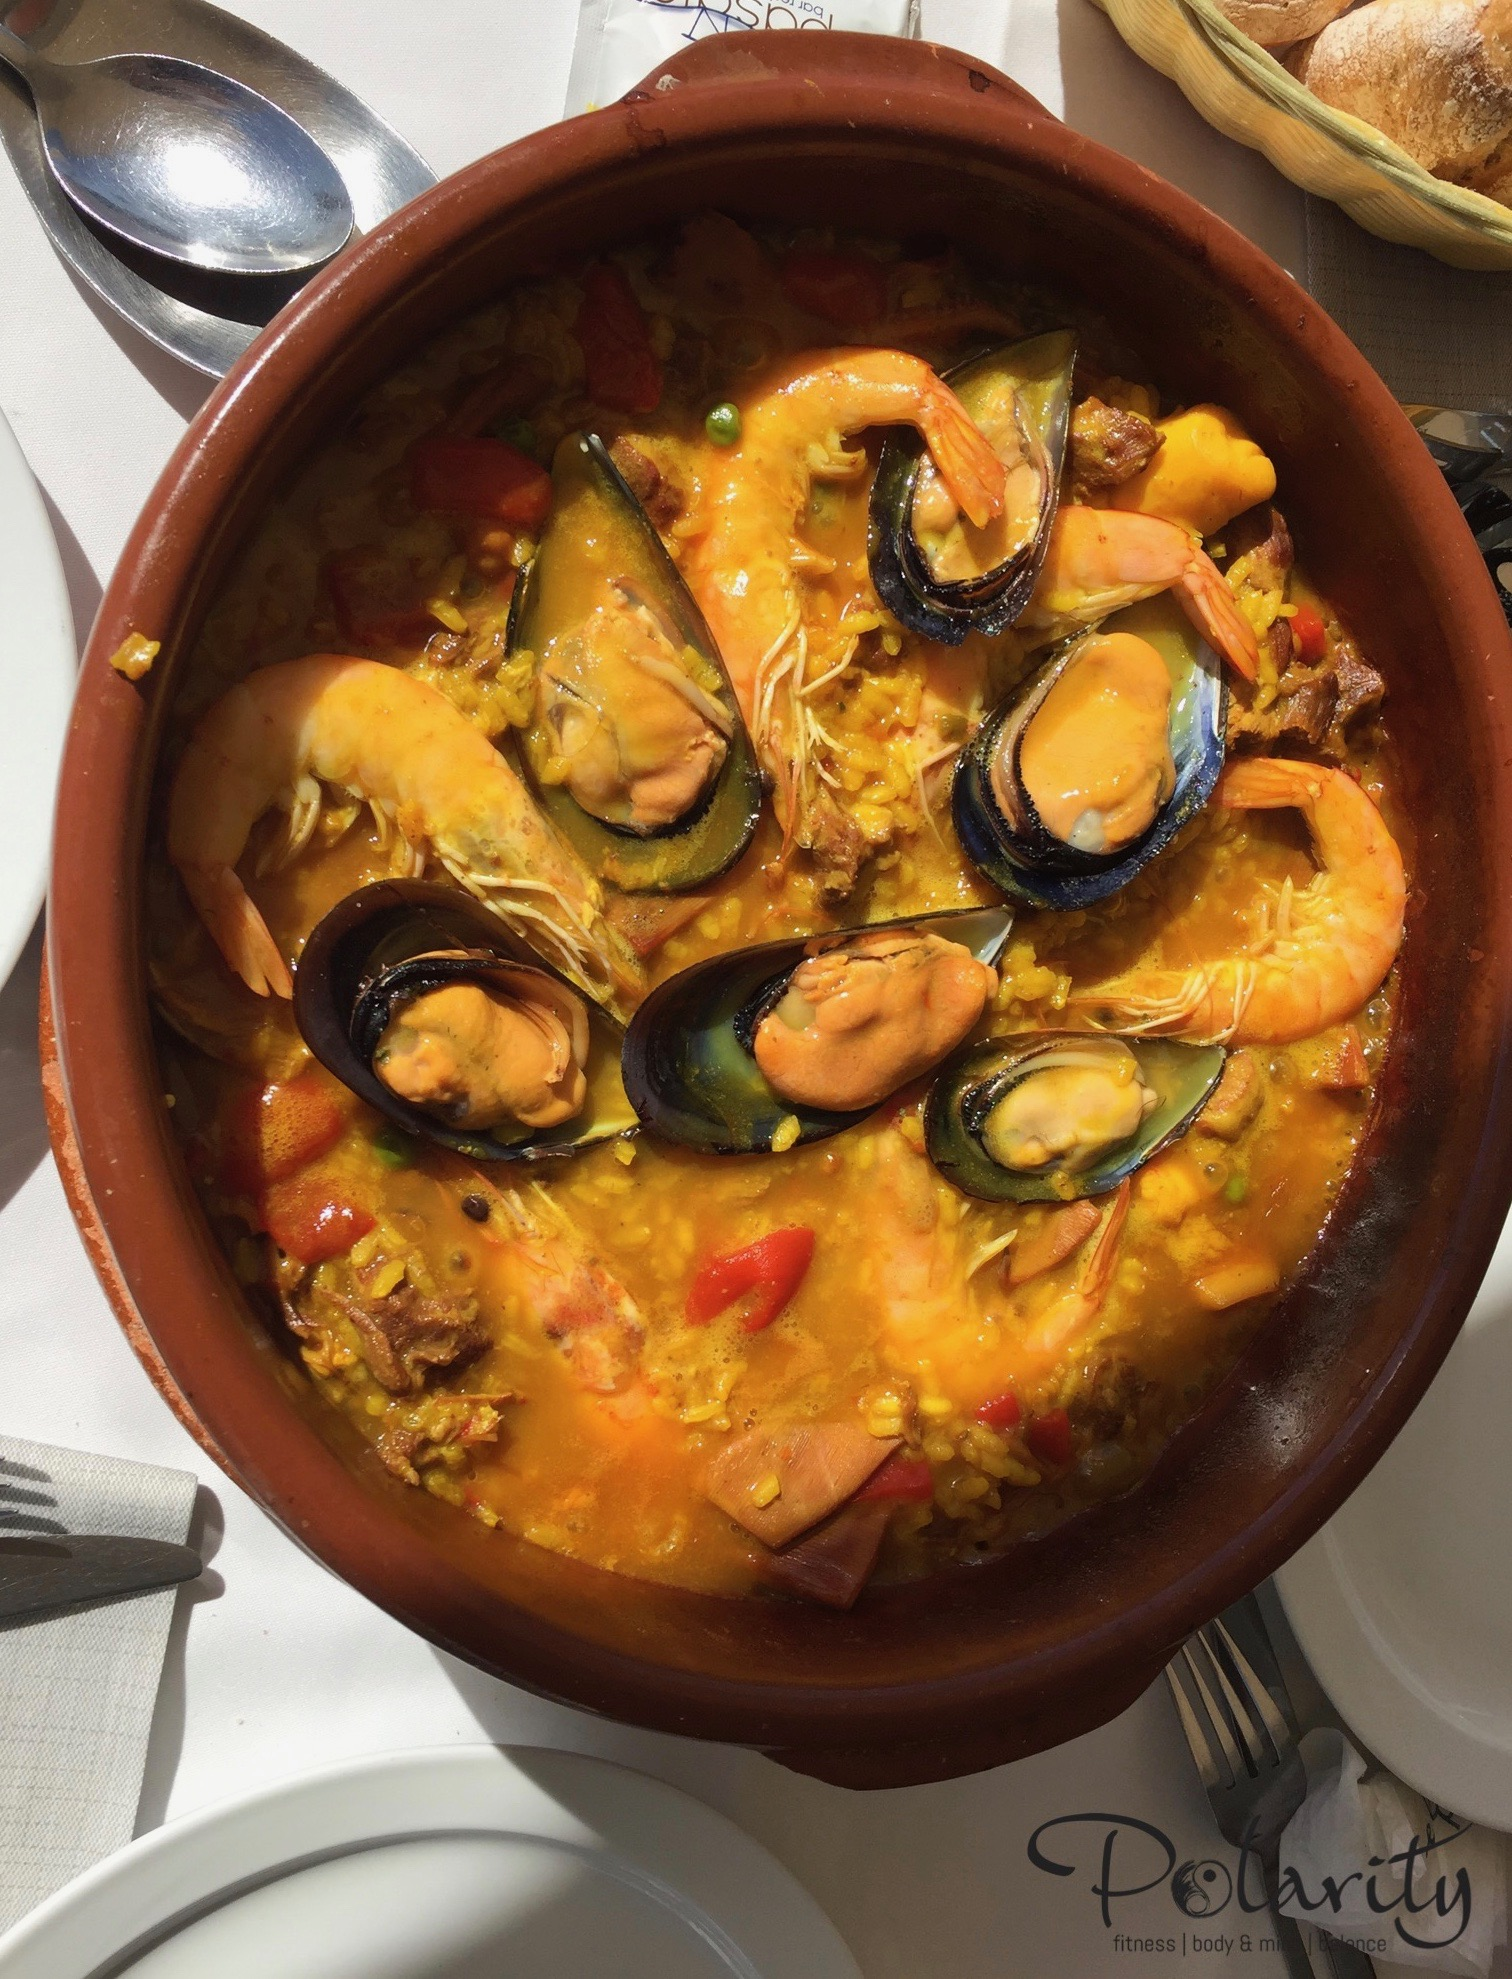 Fitnesscamp, Paella in Conil